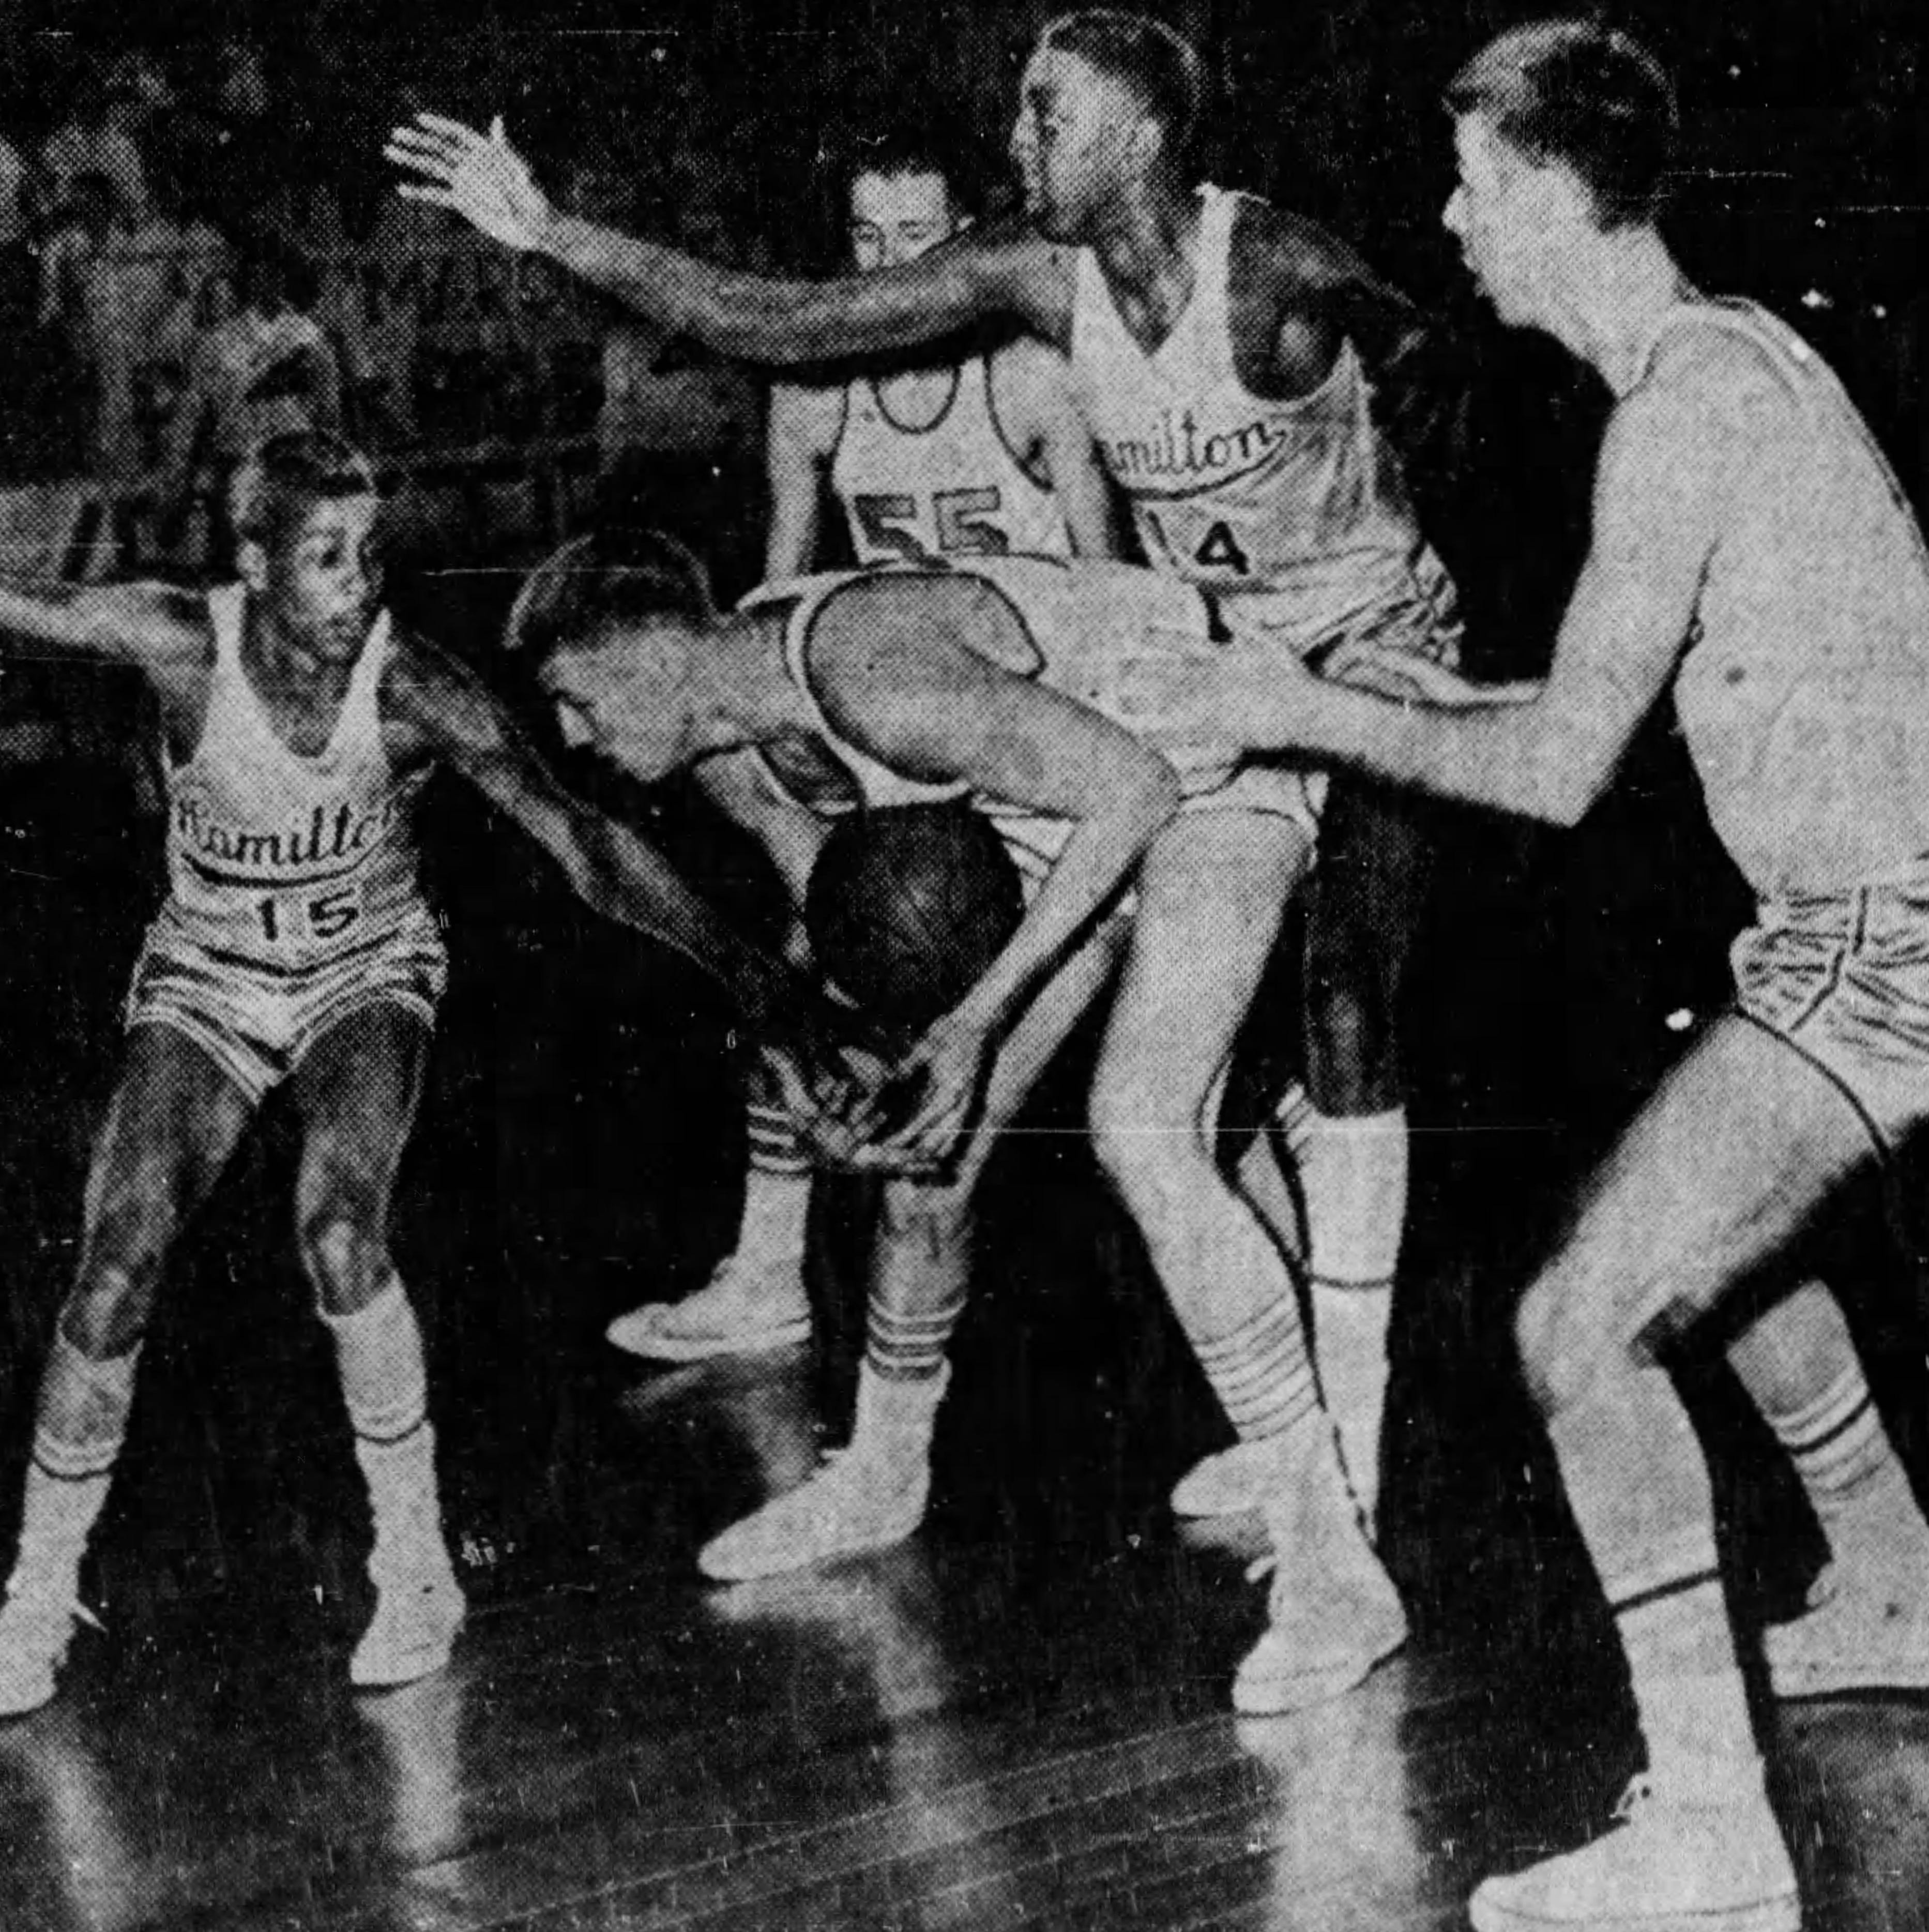 MARCH 14 1954: Ralph Crosthwaite, Western Hills center, found himself well protected by Alex Ellis (14) of Hamilton. Forward Bob Henderson (15) of the Big Blue is on the left while Earl Herzog (55), Maroons forward, watches the play.